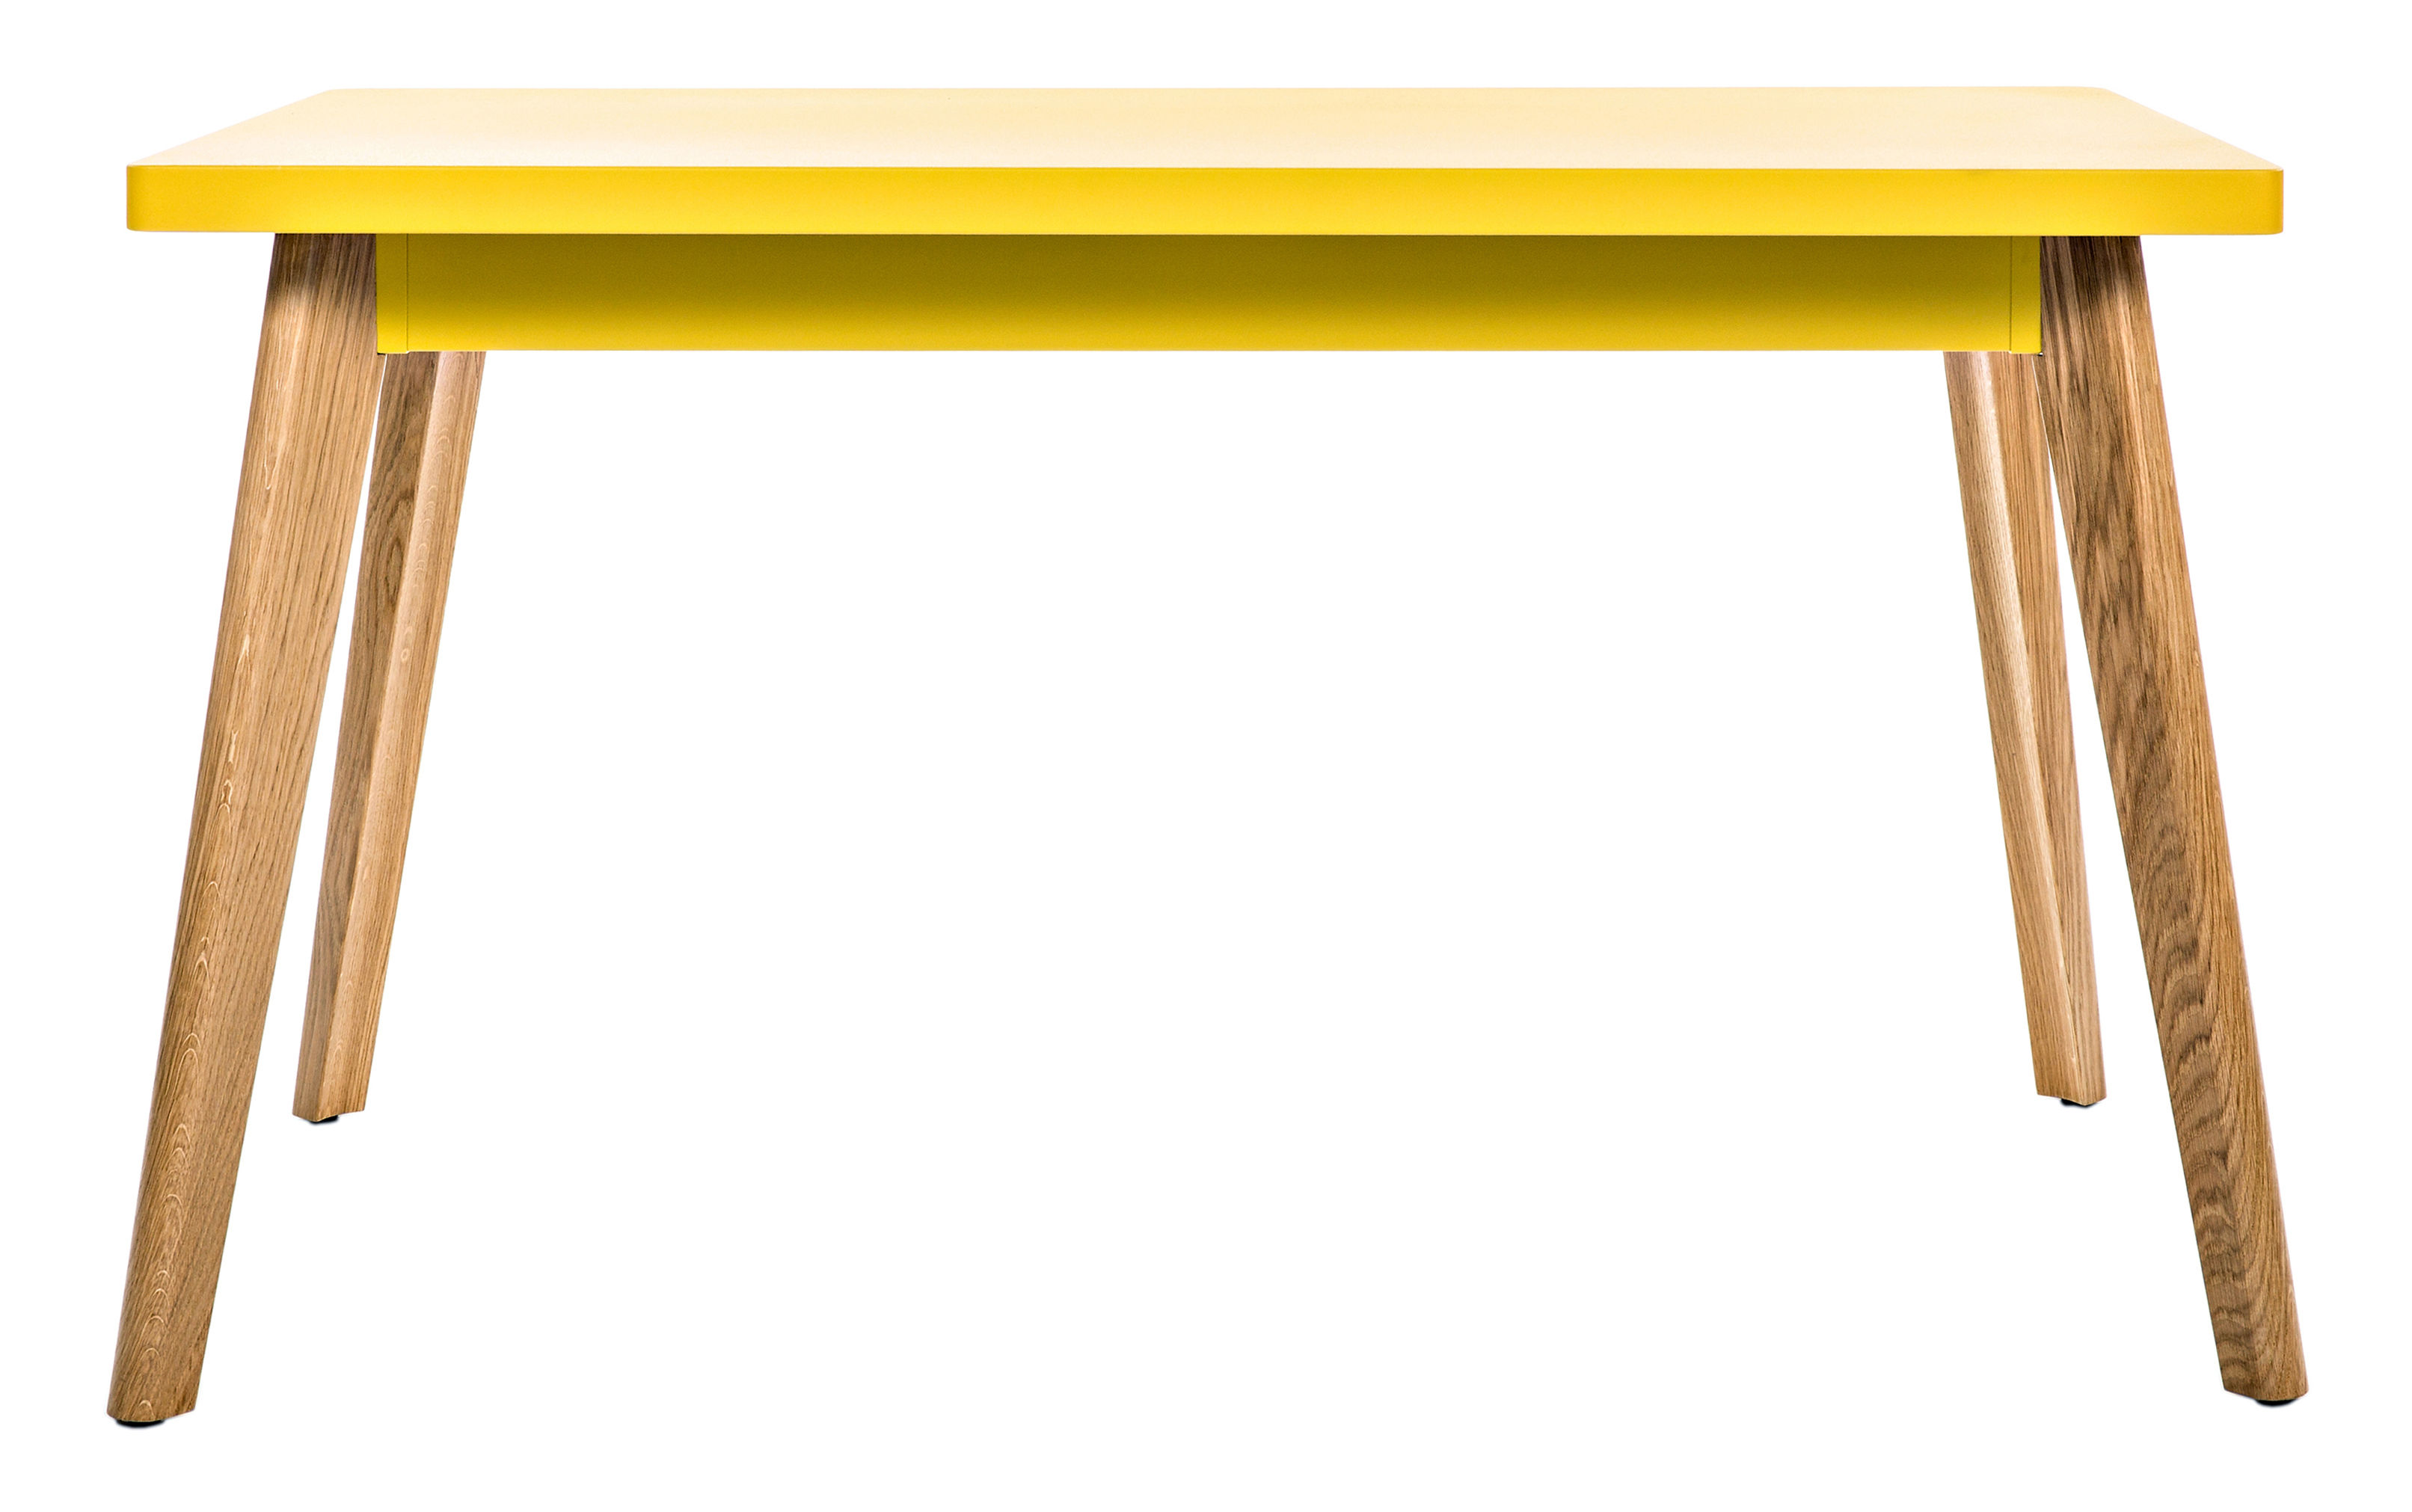 Trends - Take your seat! - 55 Rectangular table - 130 x 70 cm - Wood legs by Tolix - Lemon / Wood legs - Lacquered recycled steel, Solid oak